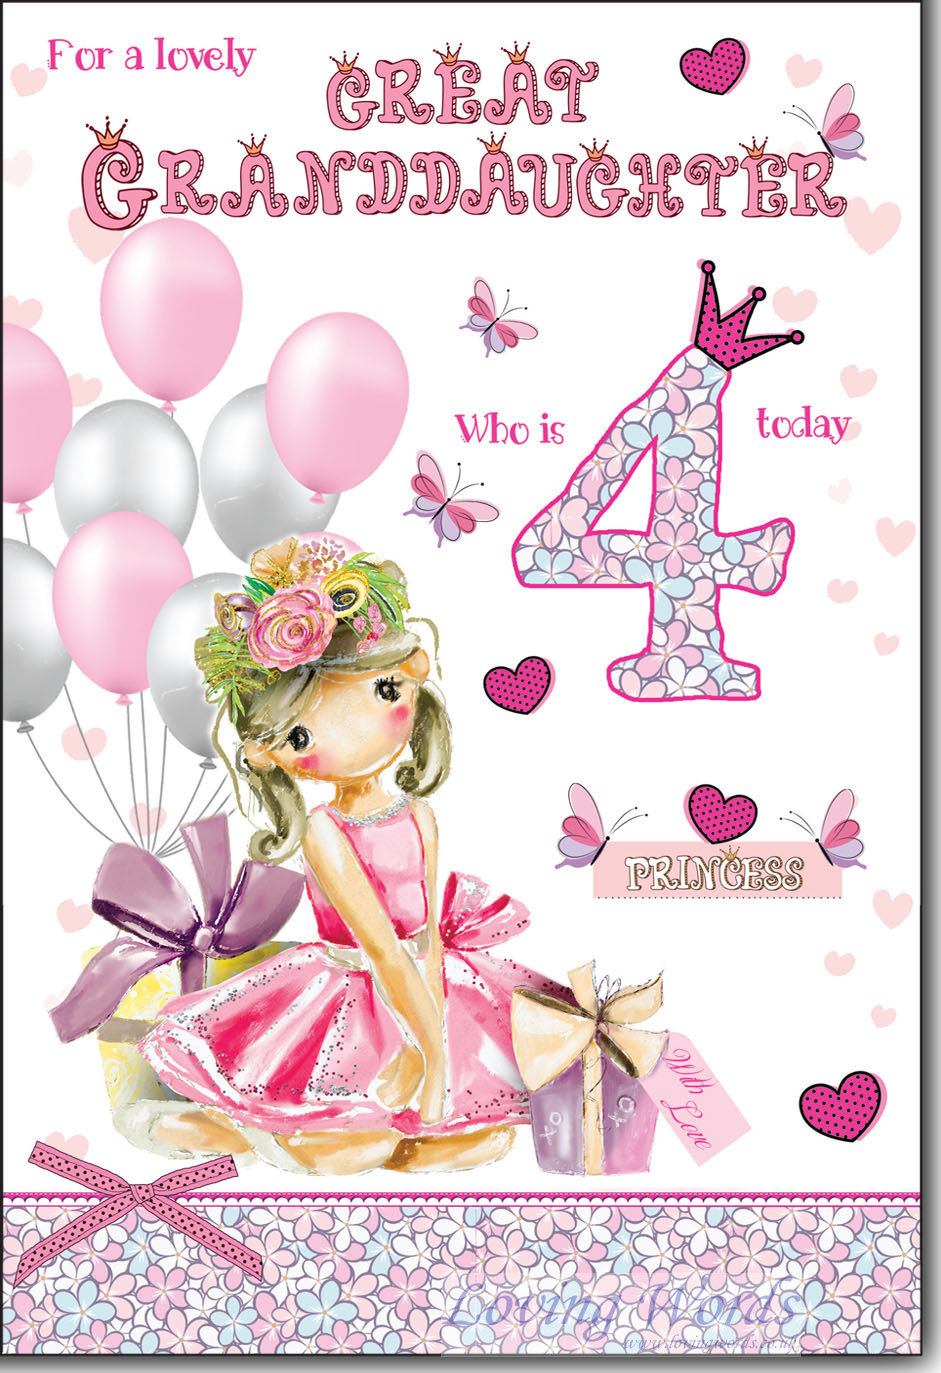 For Great Granddaughter 30th Birthday   Greeting Cards by Loving ...